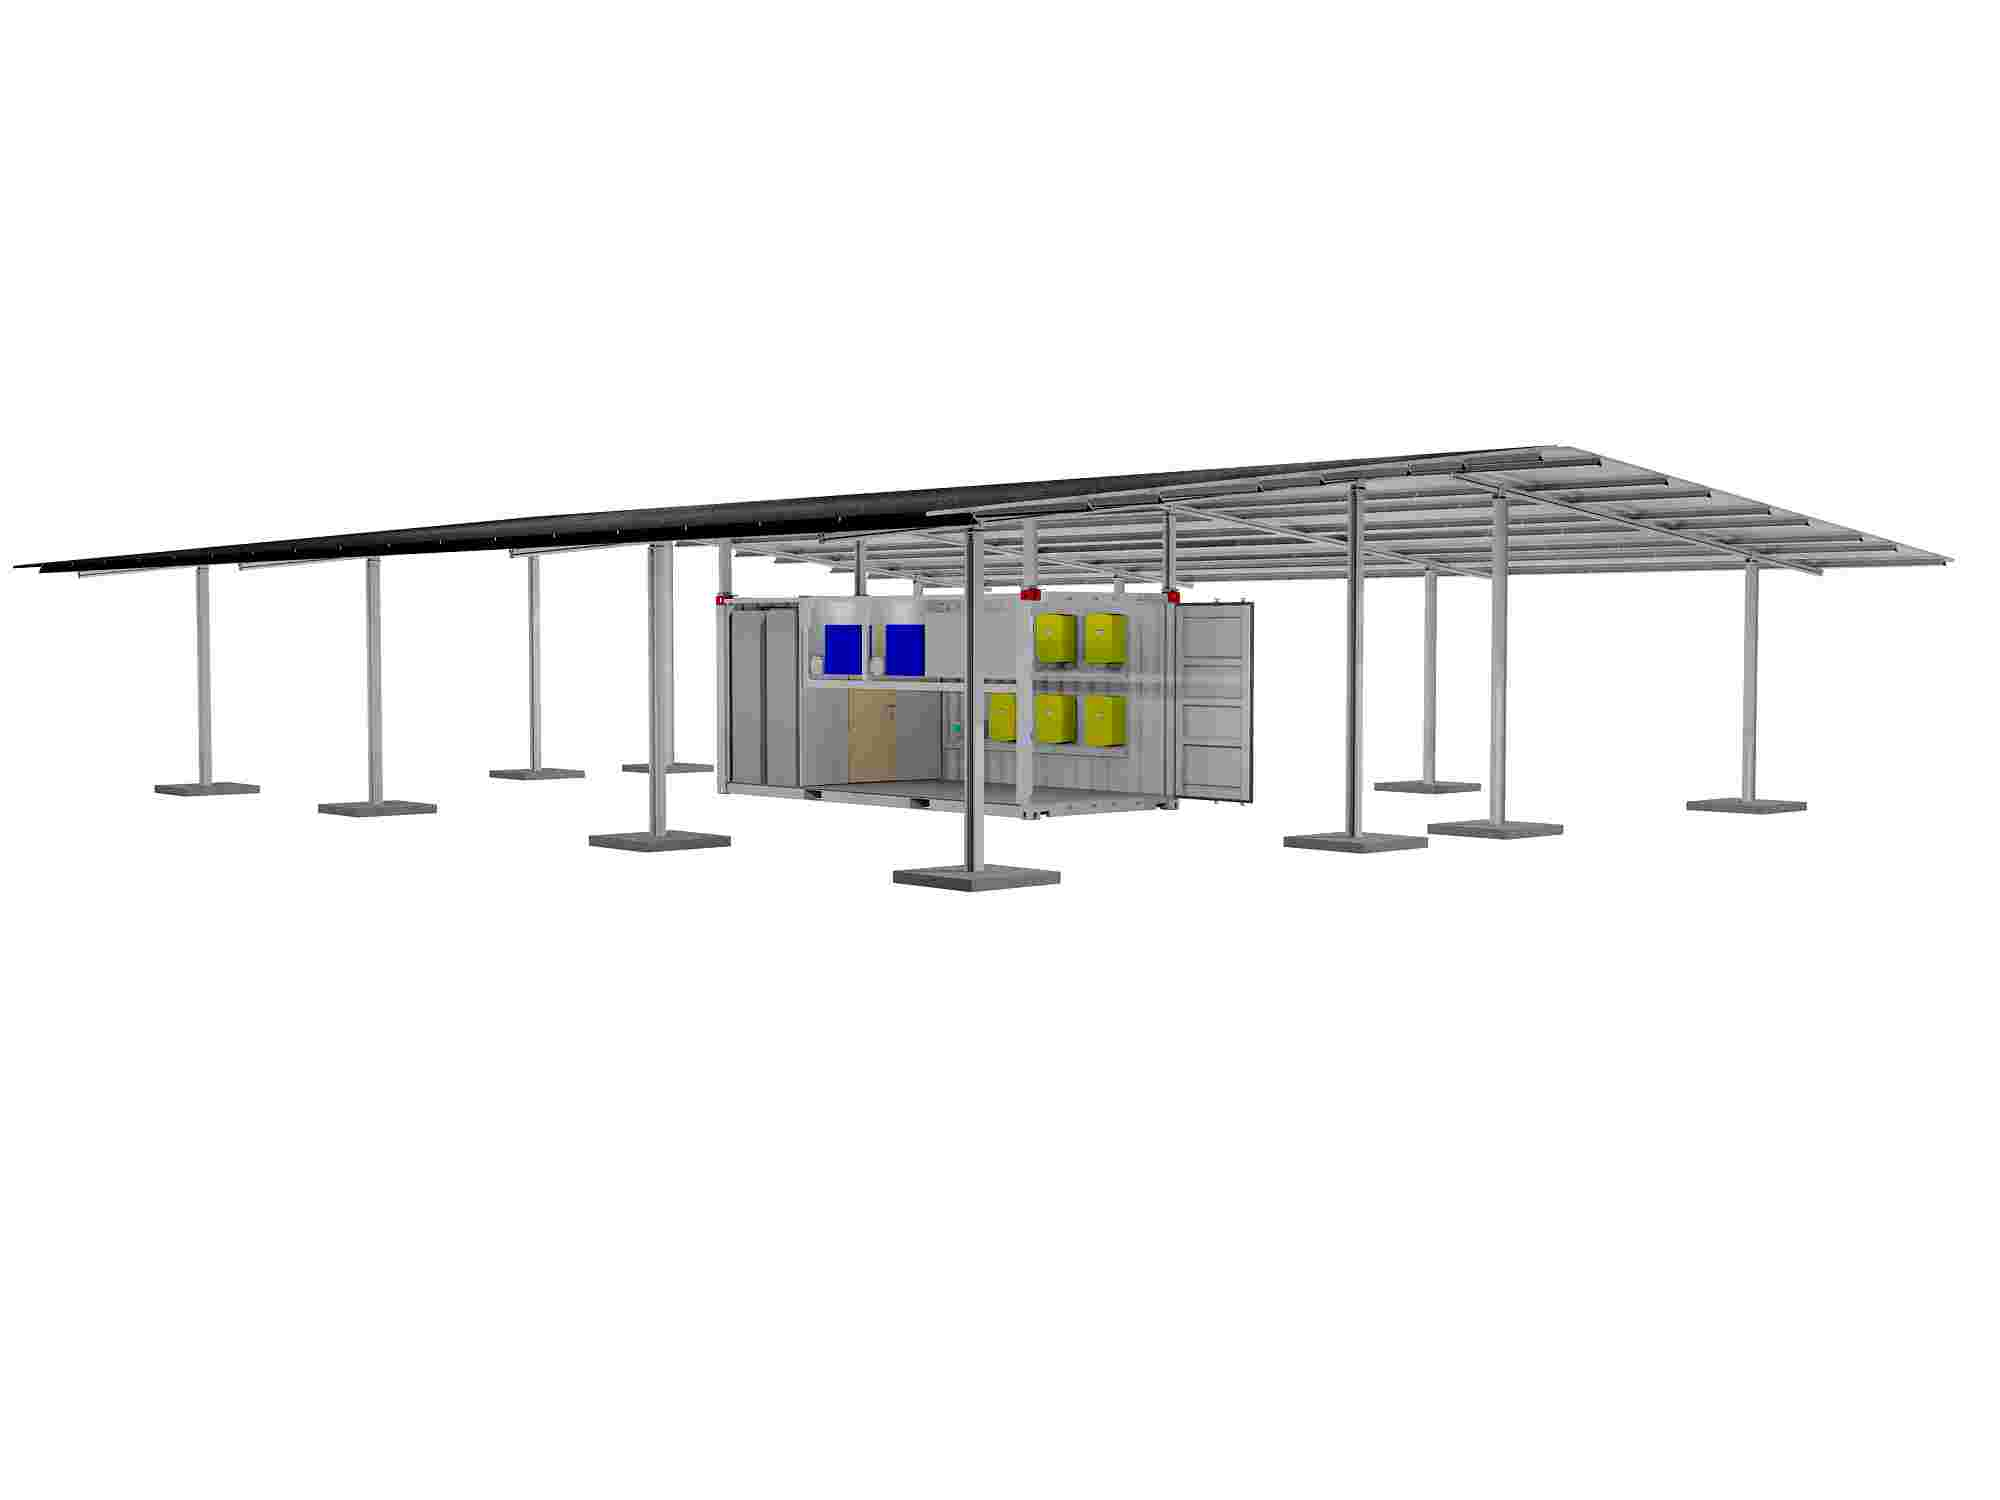 New Containerised Solar Energy Innovation Makes Market Entrance Build A Simple Powered Outdoor Light Dti Mini Grid System With 50kwp Of Pv And 150kwh Lithium Ion Batteries For Electrifying About 30 Households